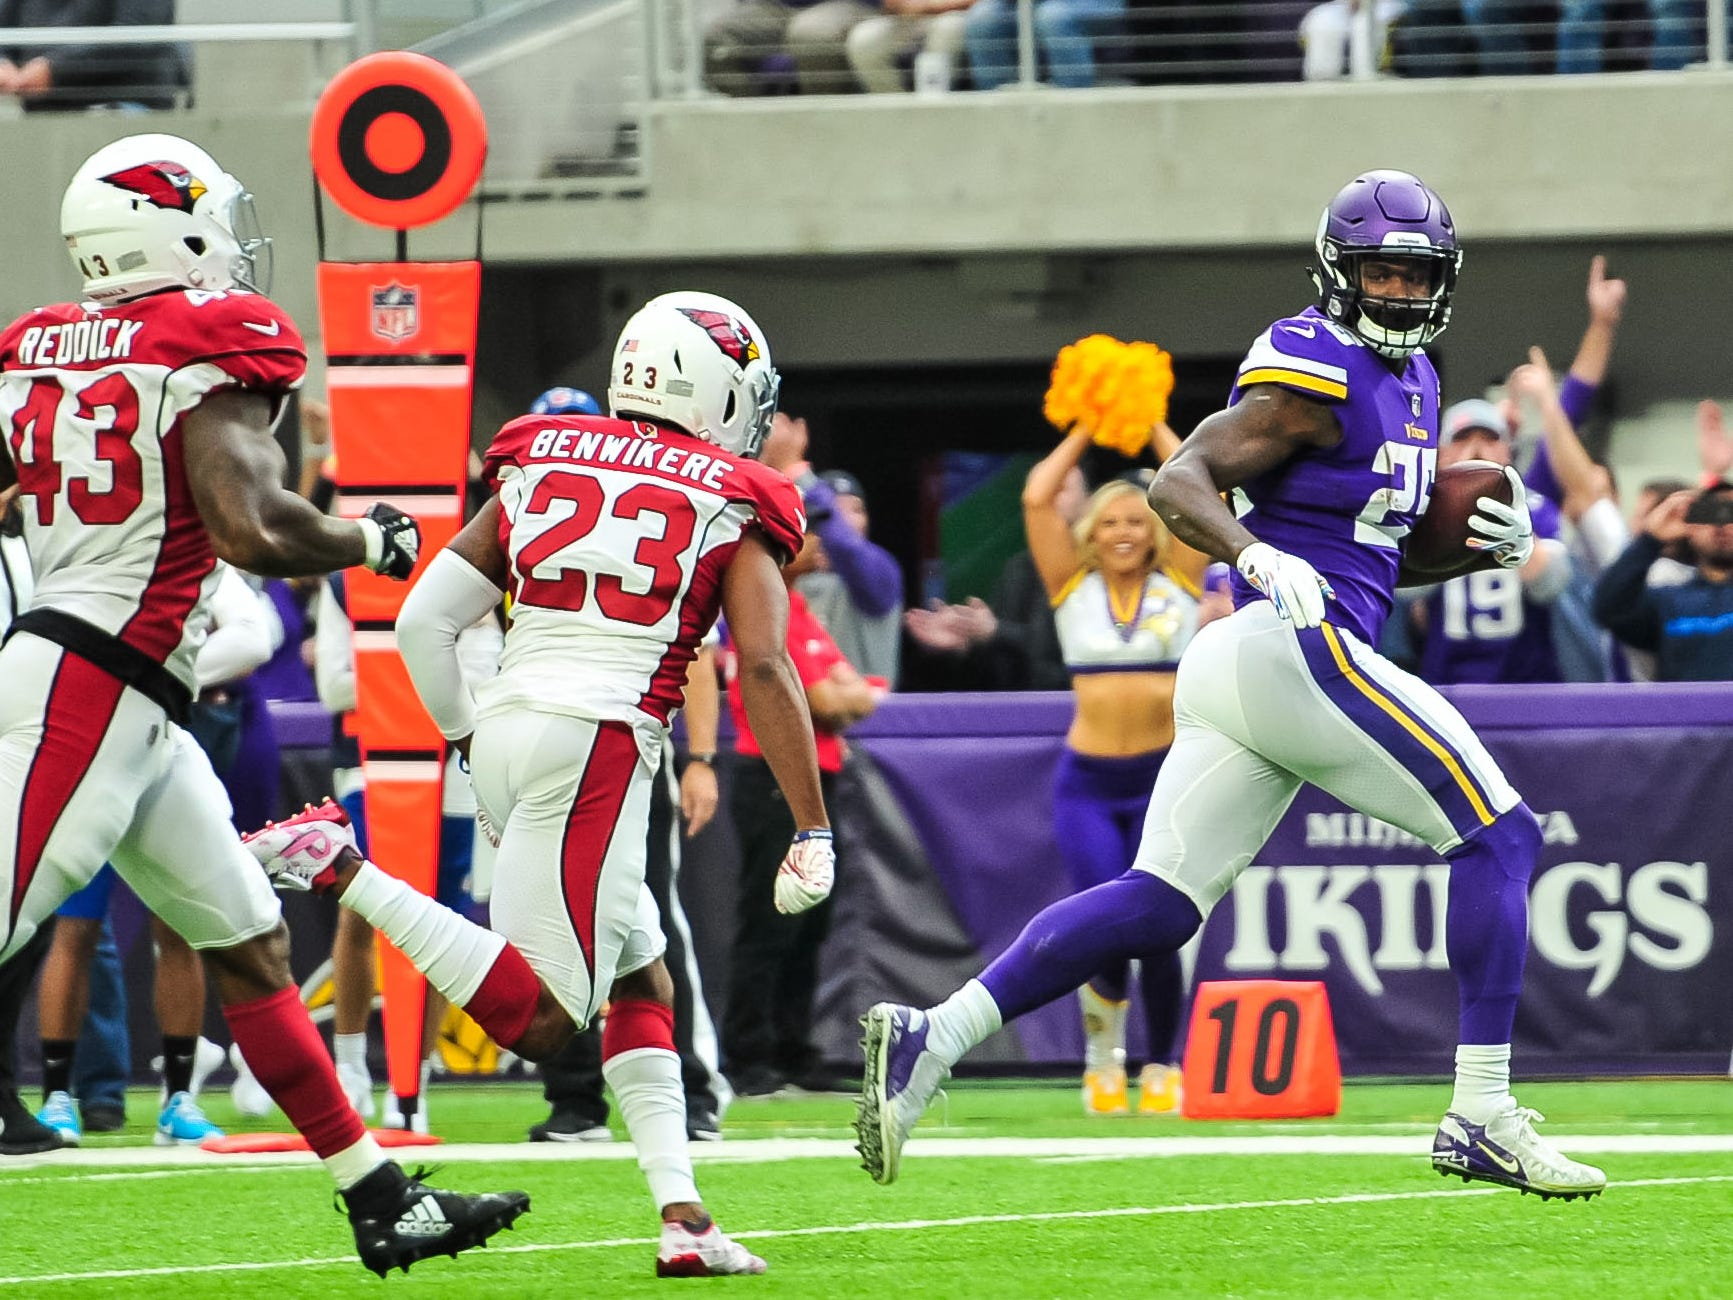 Oct 14, 2018; Minneapolis, MN, USA; Minnesota Vikings running back Latavius Murray (25) runs for a touchdown as Arizona Cardinals defensive back Bene' Benwikere (23) and linebacker Haason Reddick (43) chase from behind during the first quarter at U.S. Bank Stadium. Mandatory Credit: Jeffrey Becker-USA TODAY Sports